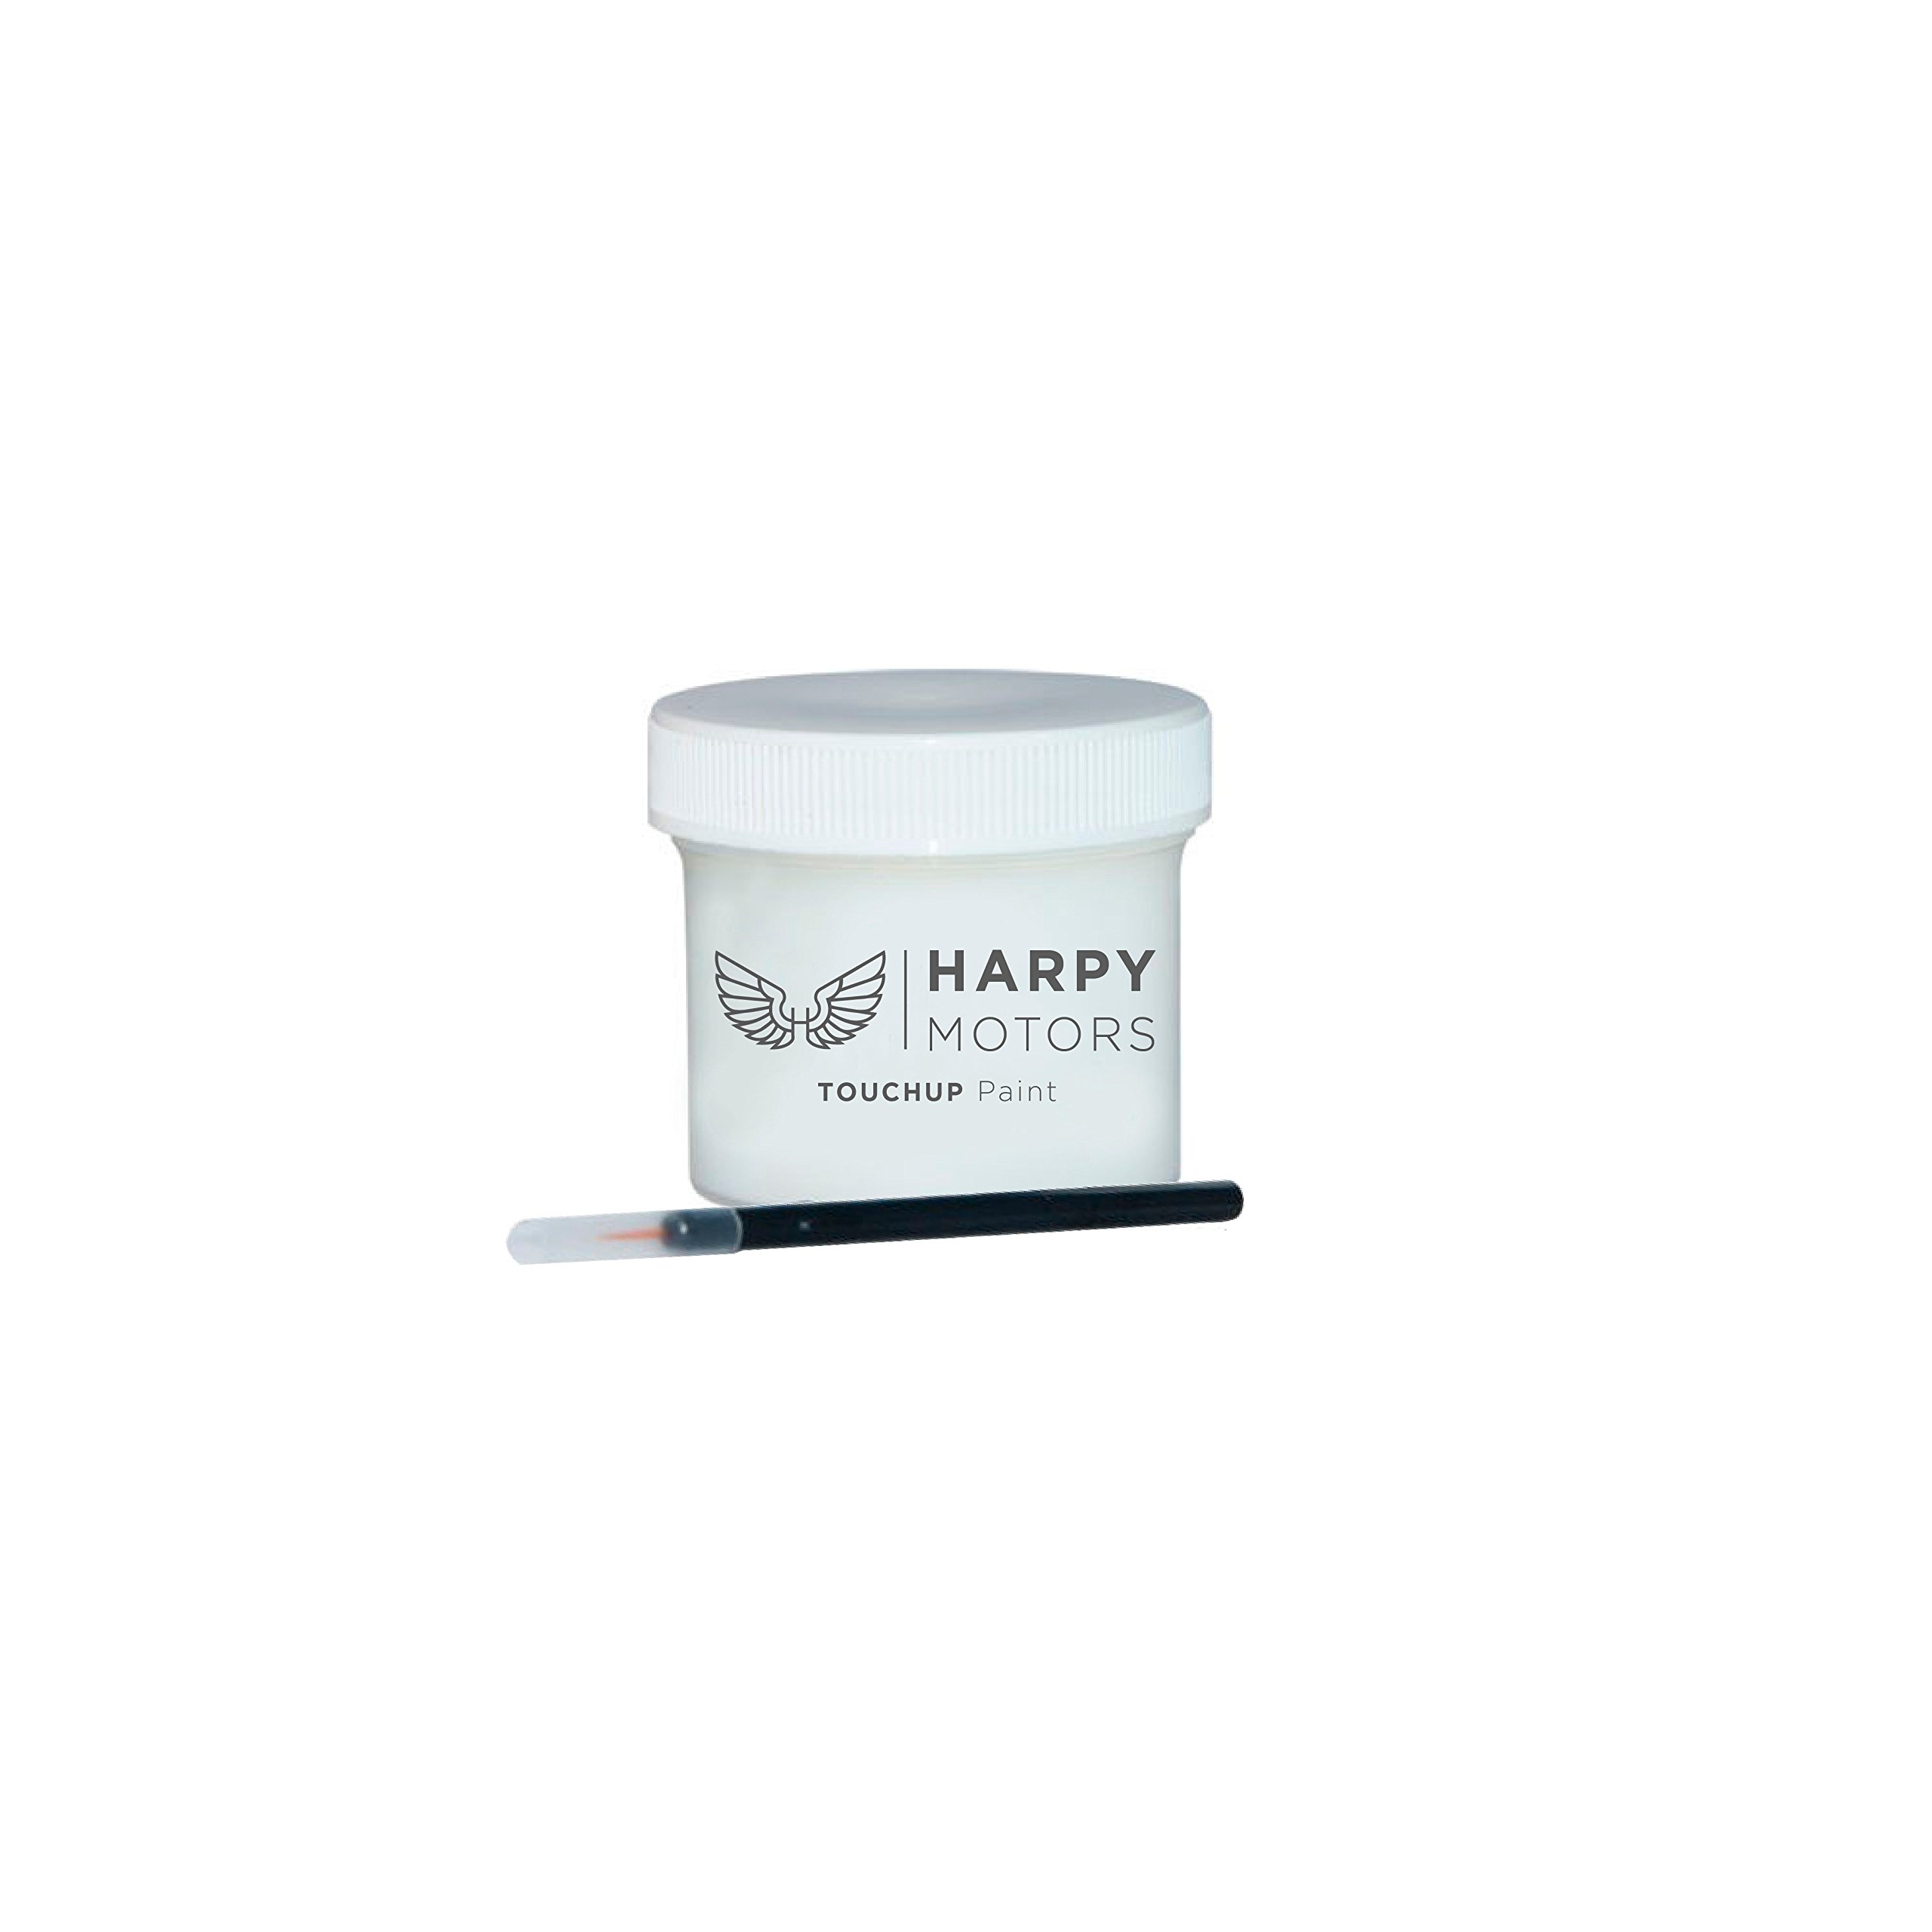 Harpy Motors 2010-2015 GMC Sierra 800J White Diamond Pearl Automotive 2oz Touch up Paint with Brush -Color Match Guaranteed by Harpy Motors